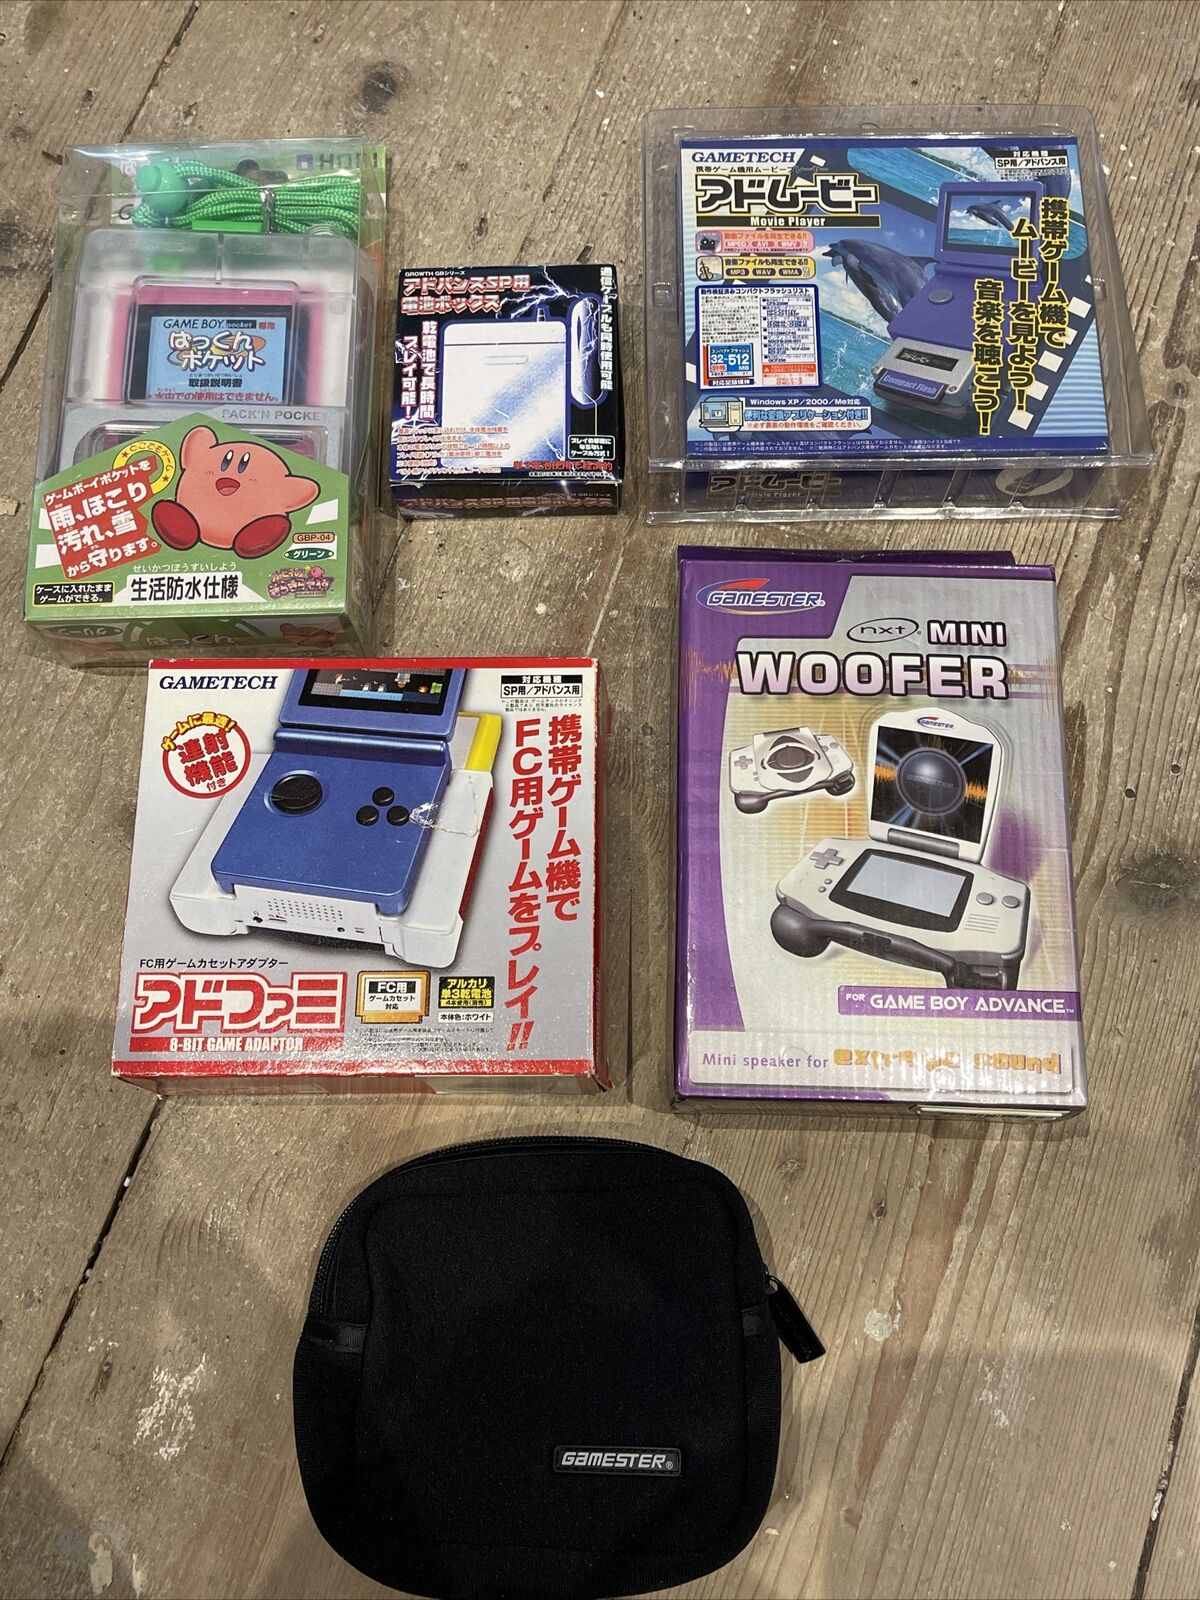 A Collection Of GameBoy Accessories